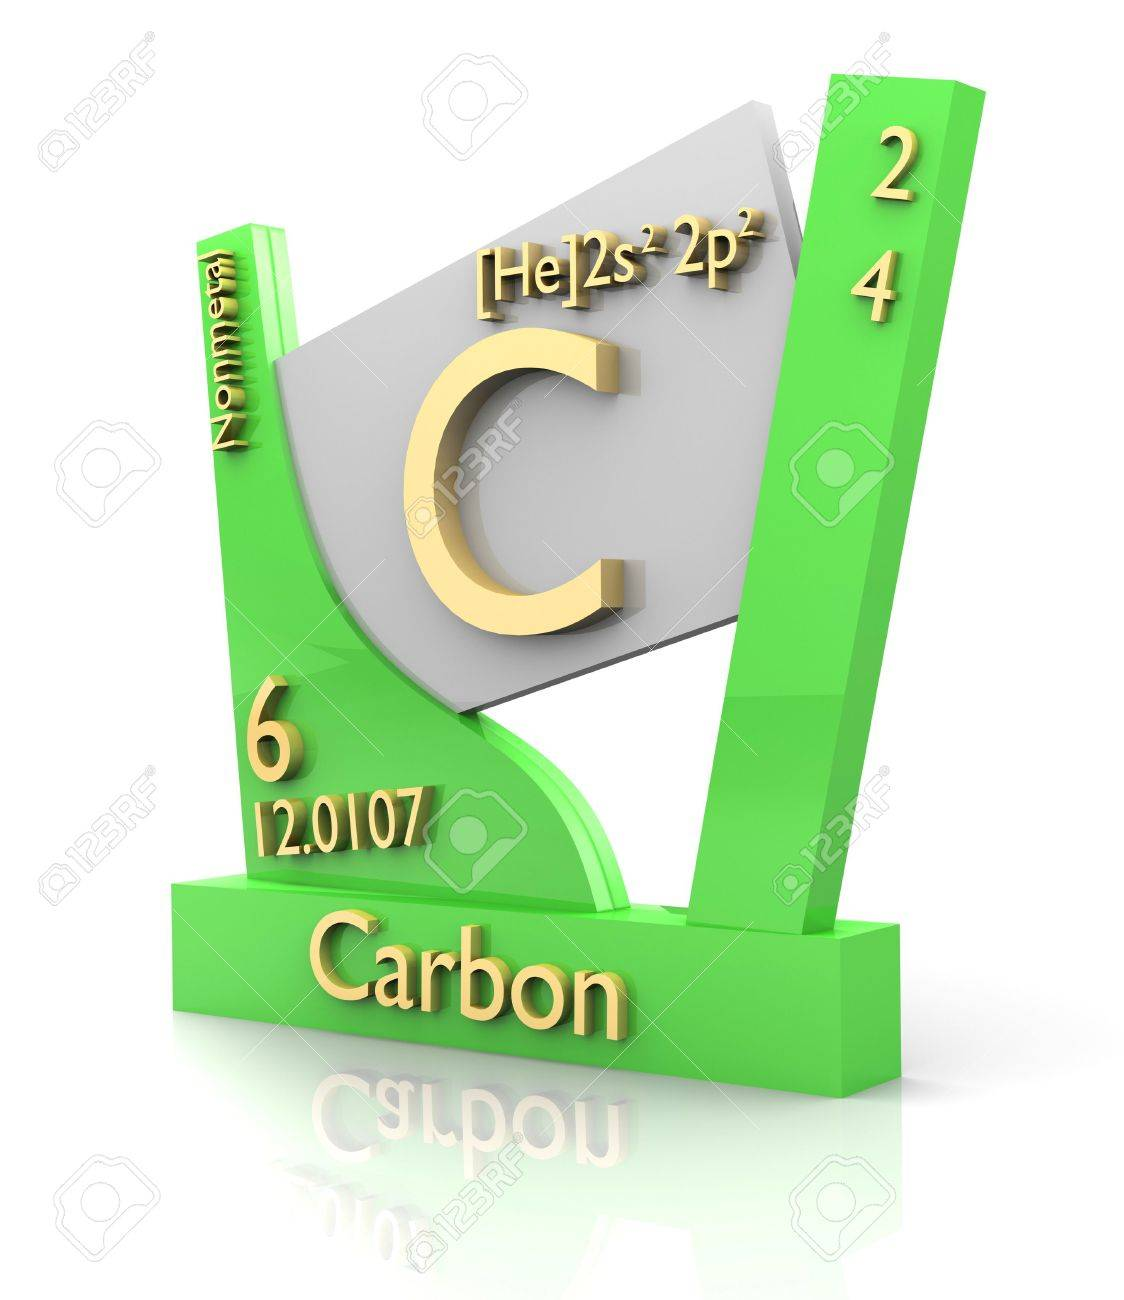 Carbon symbol periodic table images periodic table images carbon form periodic table of elements 3d made stock photo carbon form periodic table of elements gamestrikefo Gallery